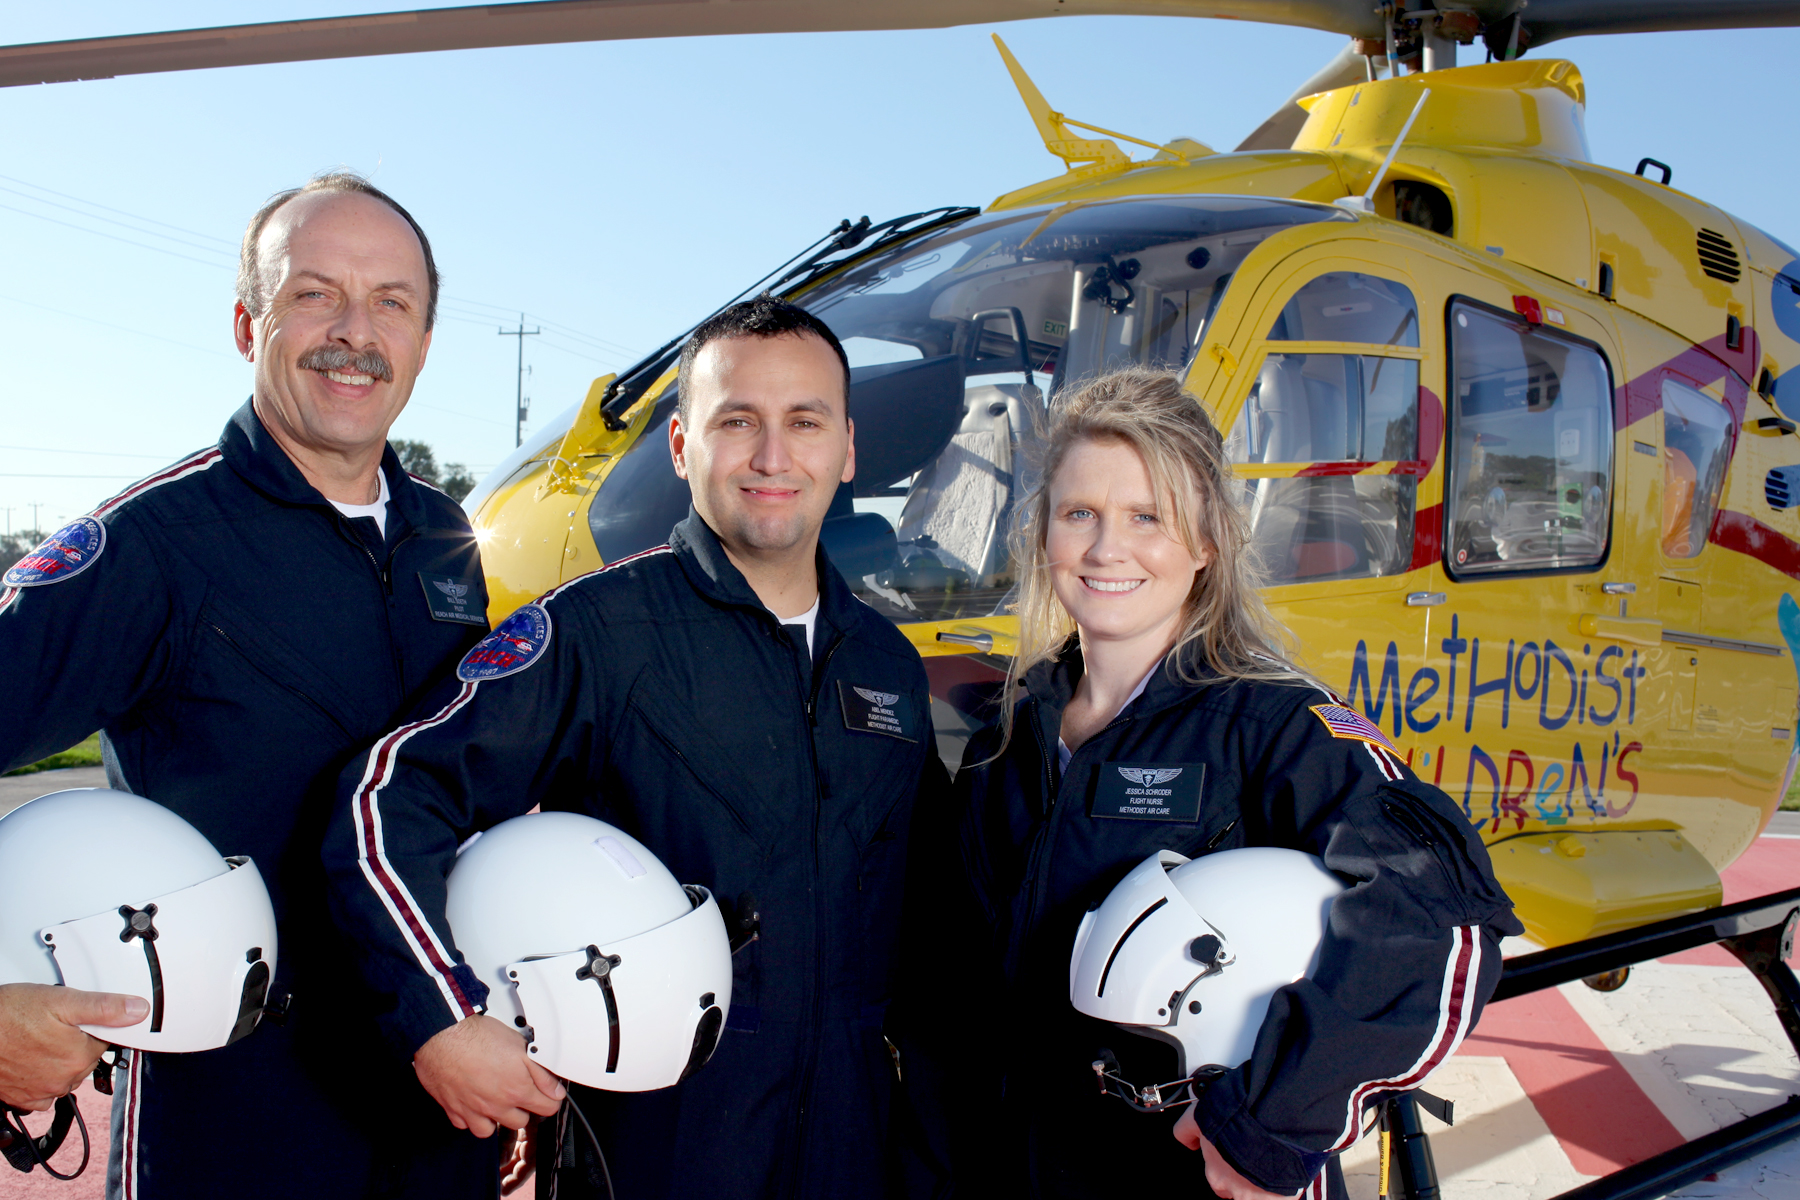 Leia's transport team from Methodist AirCare included Pilot Bill Soeth, left, and Flight Nurse Jessica Schroder, right, acting as Safety Officer.